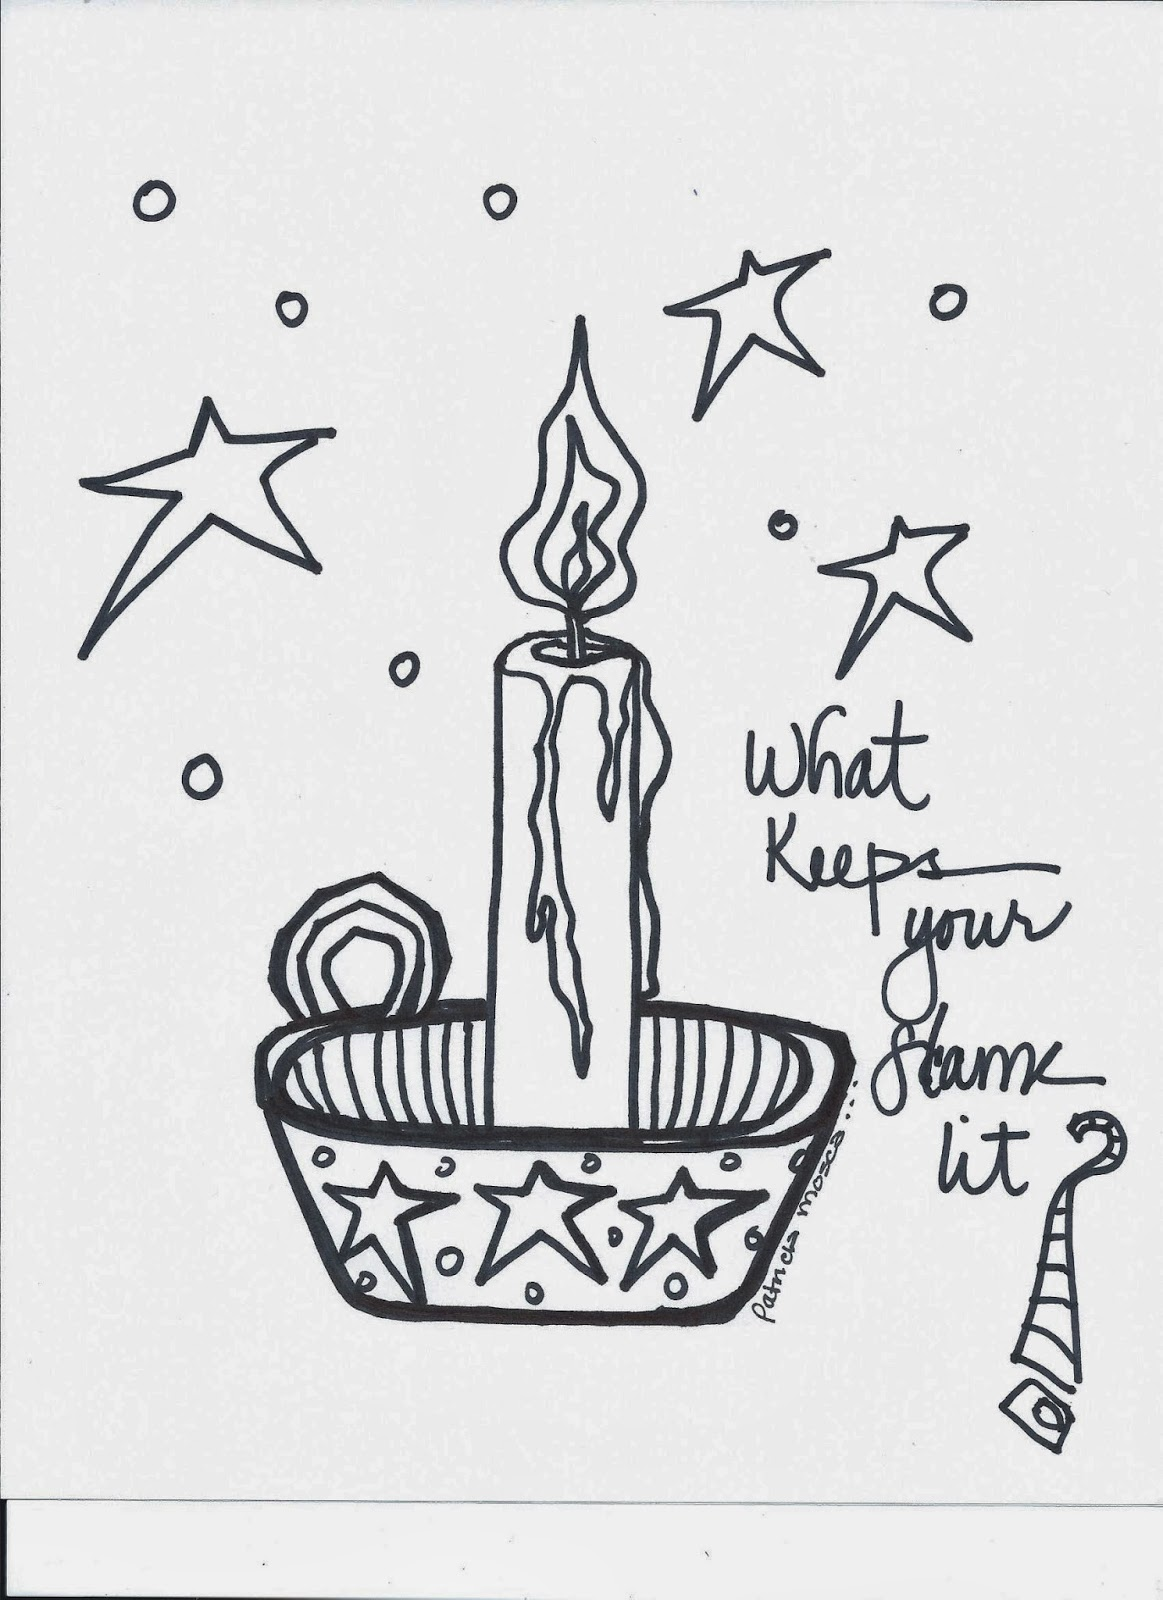 Coloring book page of a playground - Flame Coloring Book Page A Little Something From The Creative Playground It Is So Easy To Burn Ourselves Out What Keeps Your Creative Flame Lit